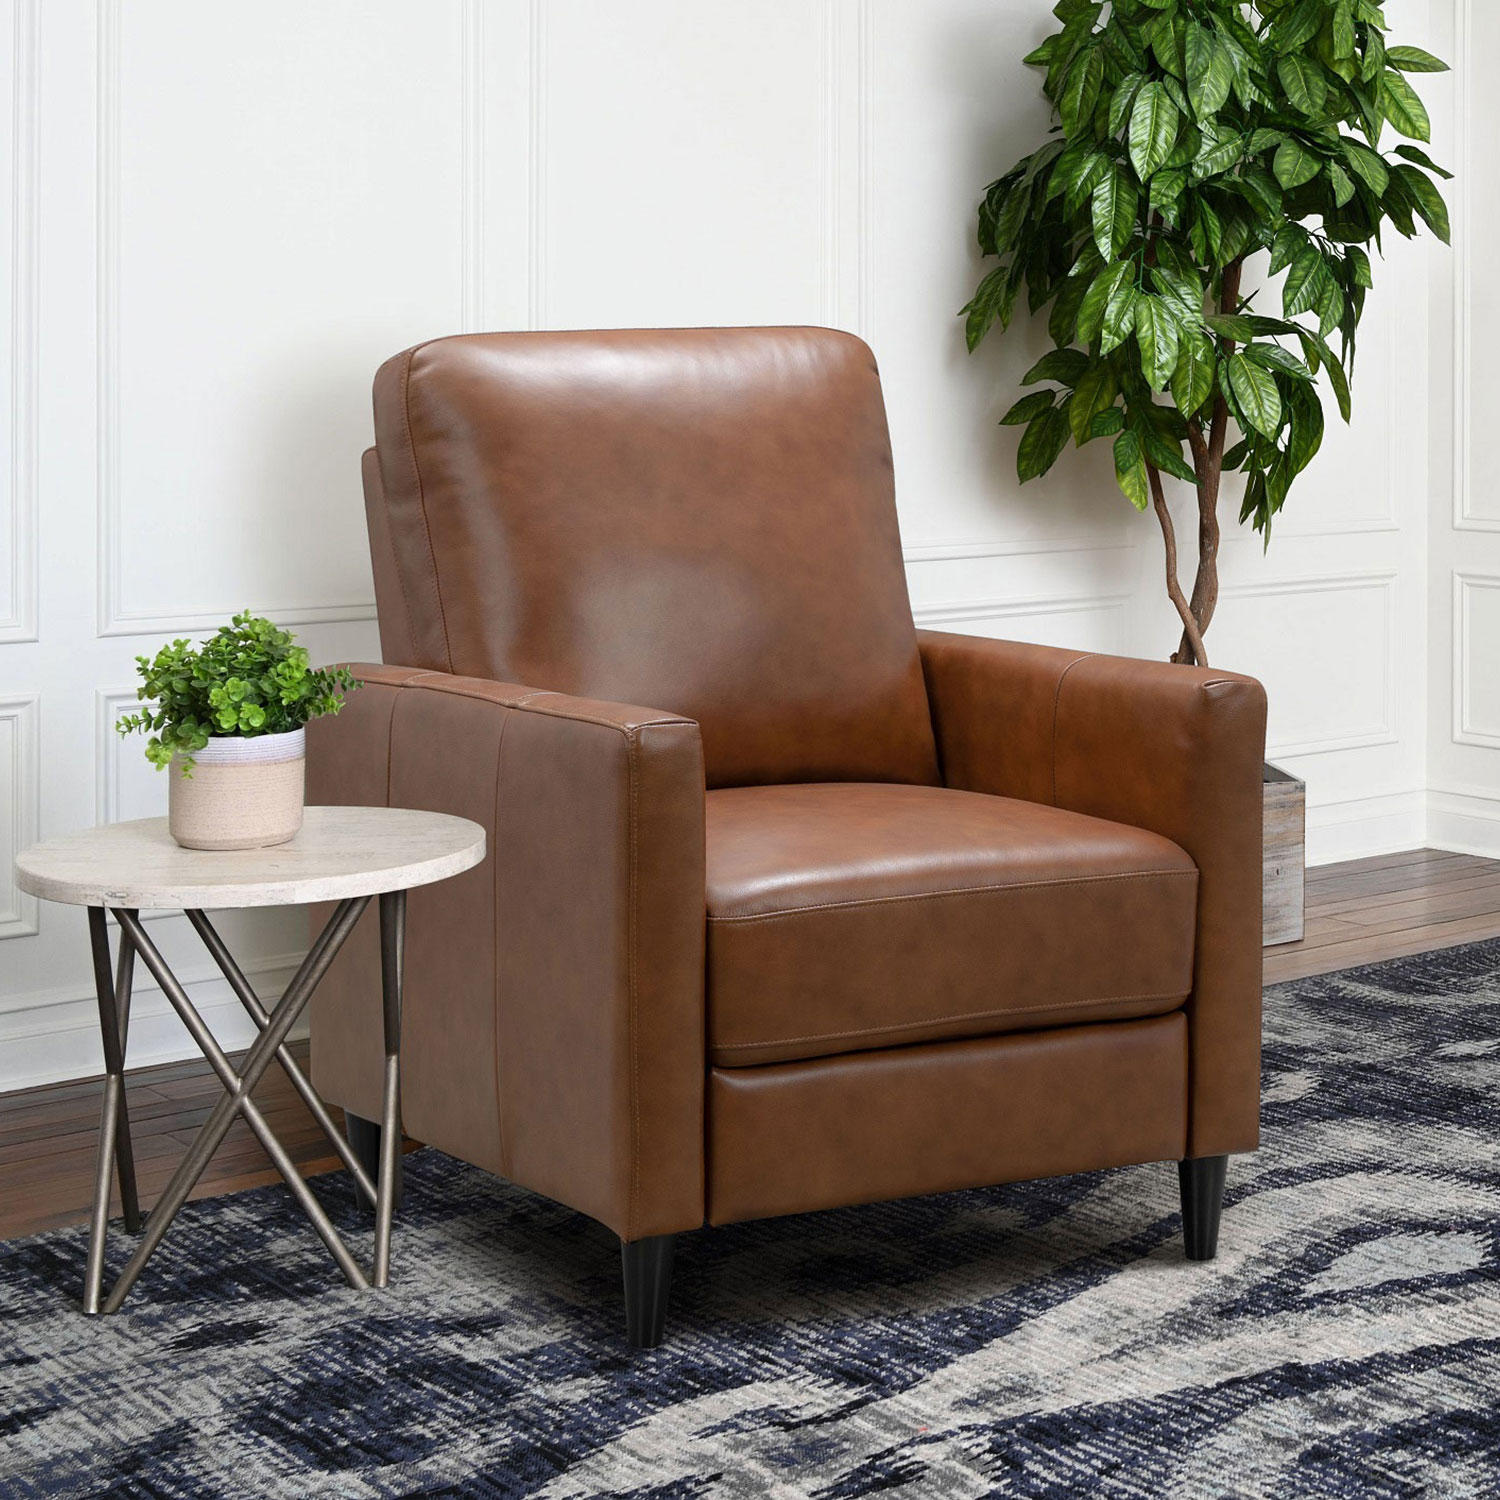 Abbyson Living Crestview Top-Grain Leather Pushback Recliner (Assorted Color)